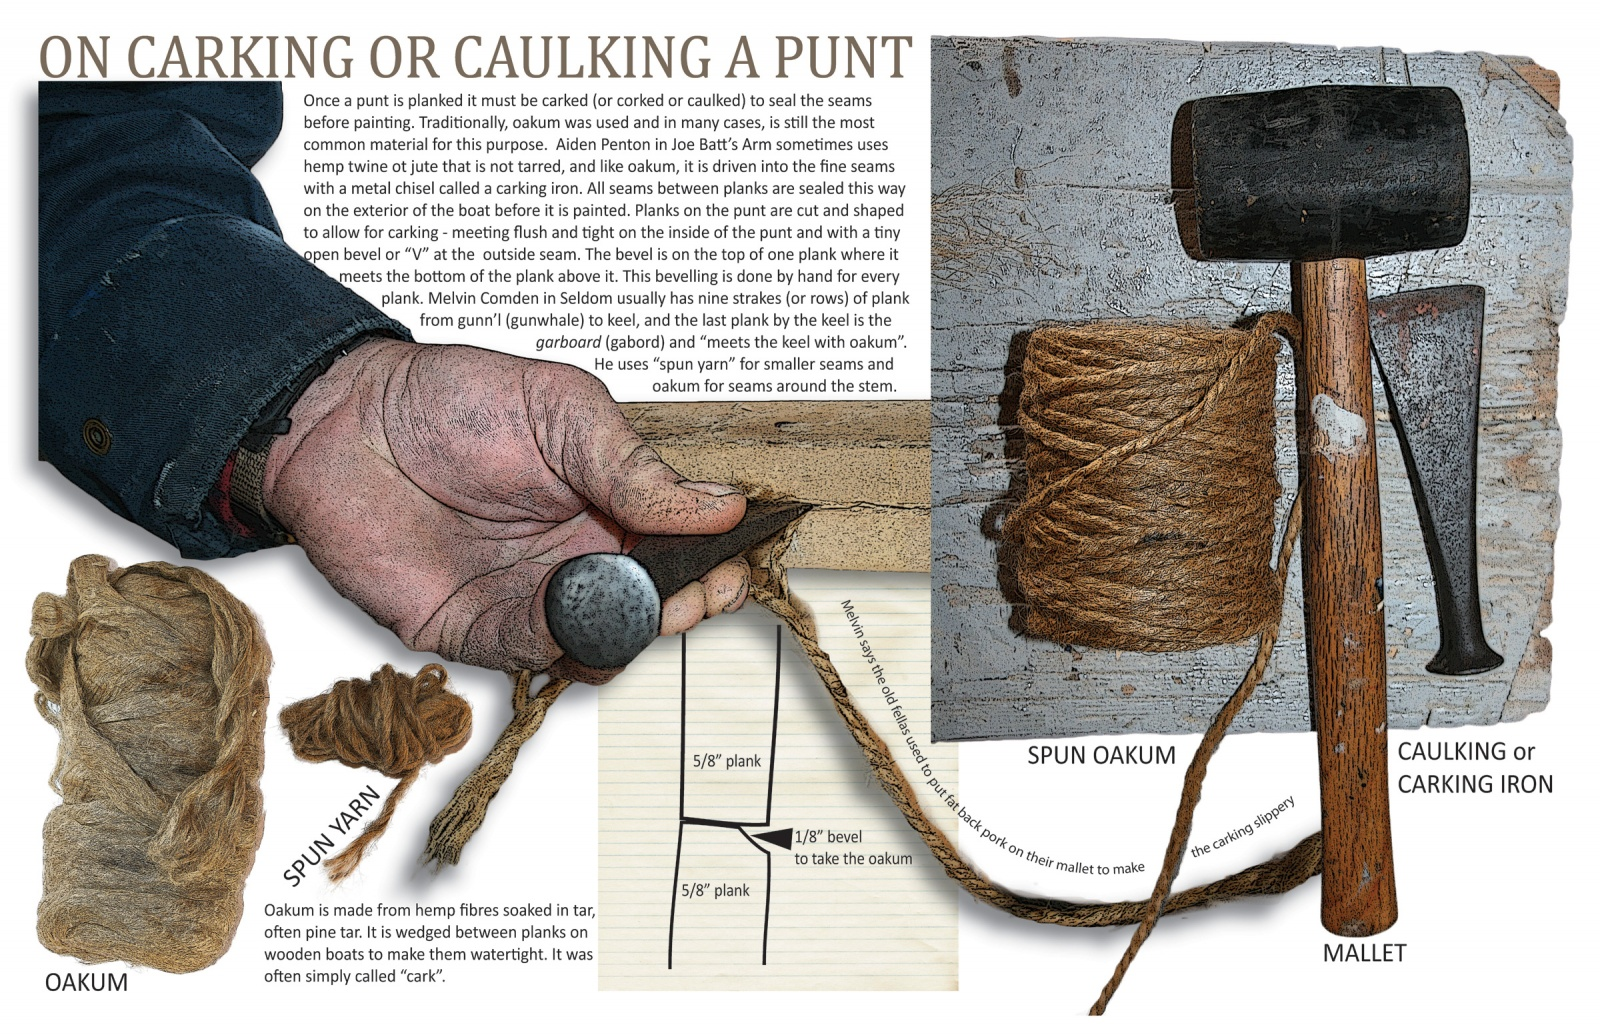 On Carking or Caulking a Punt